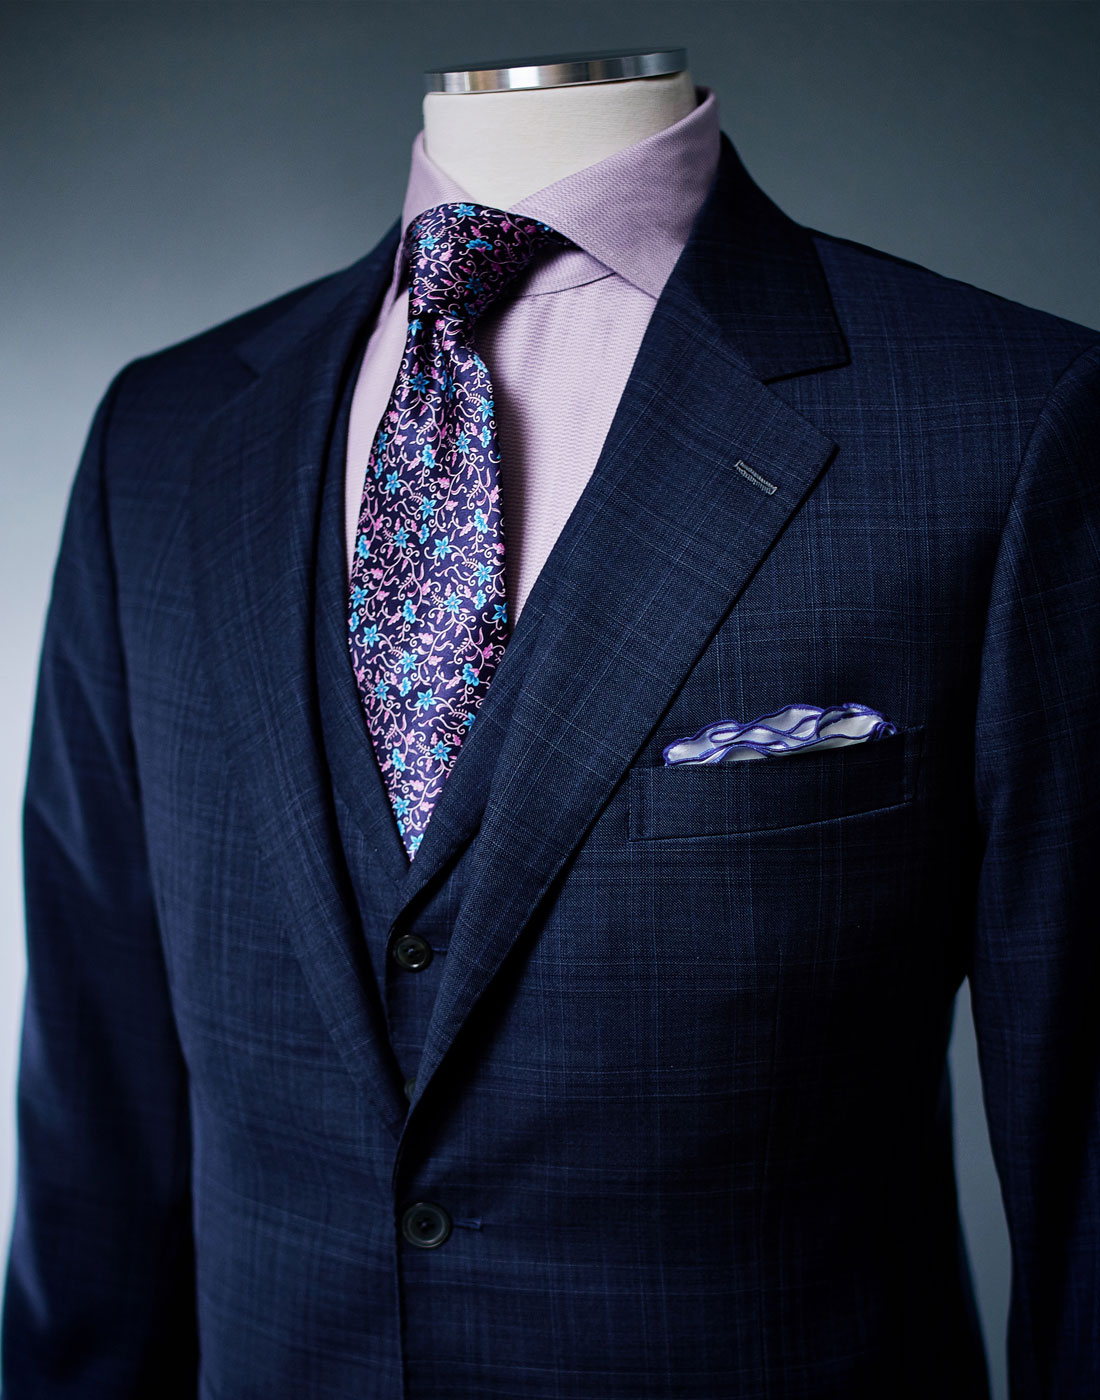 Men's bespoke suit jacket with a purple tie